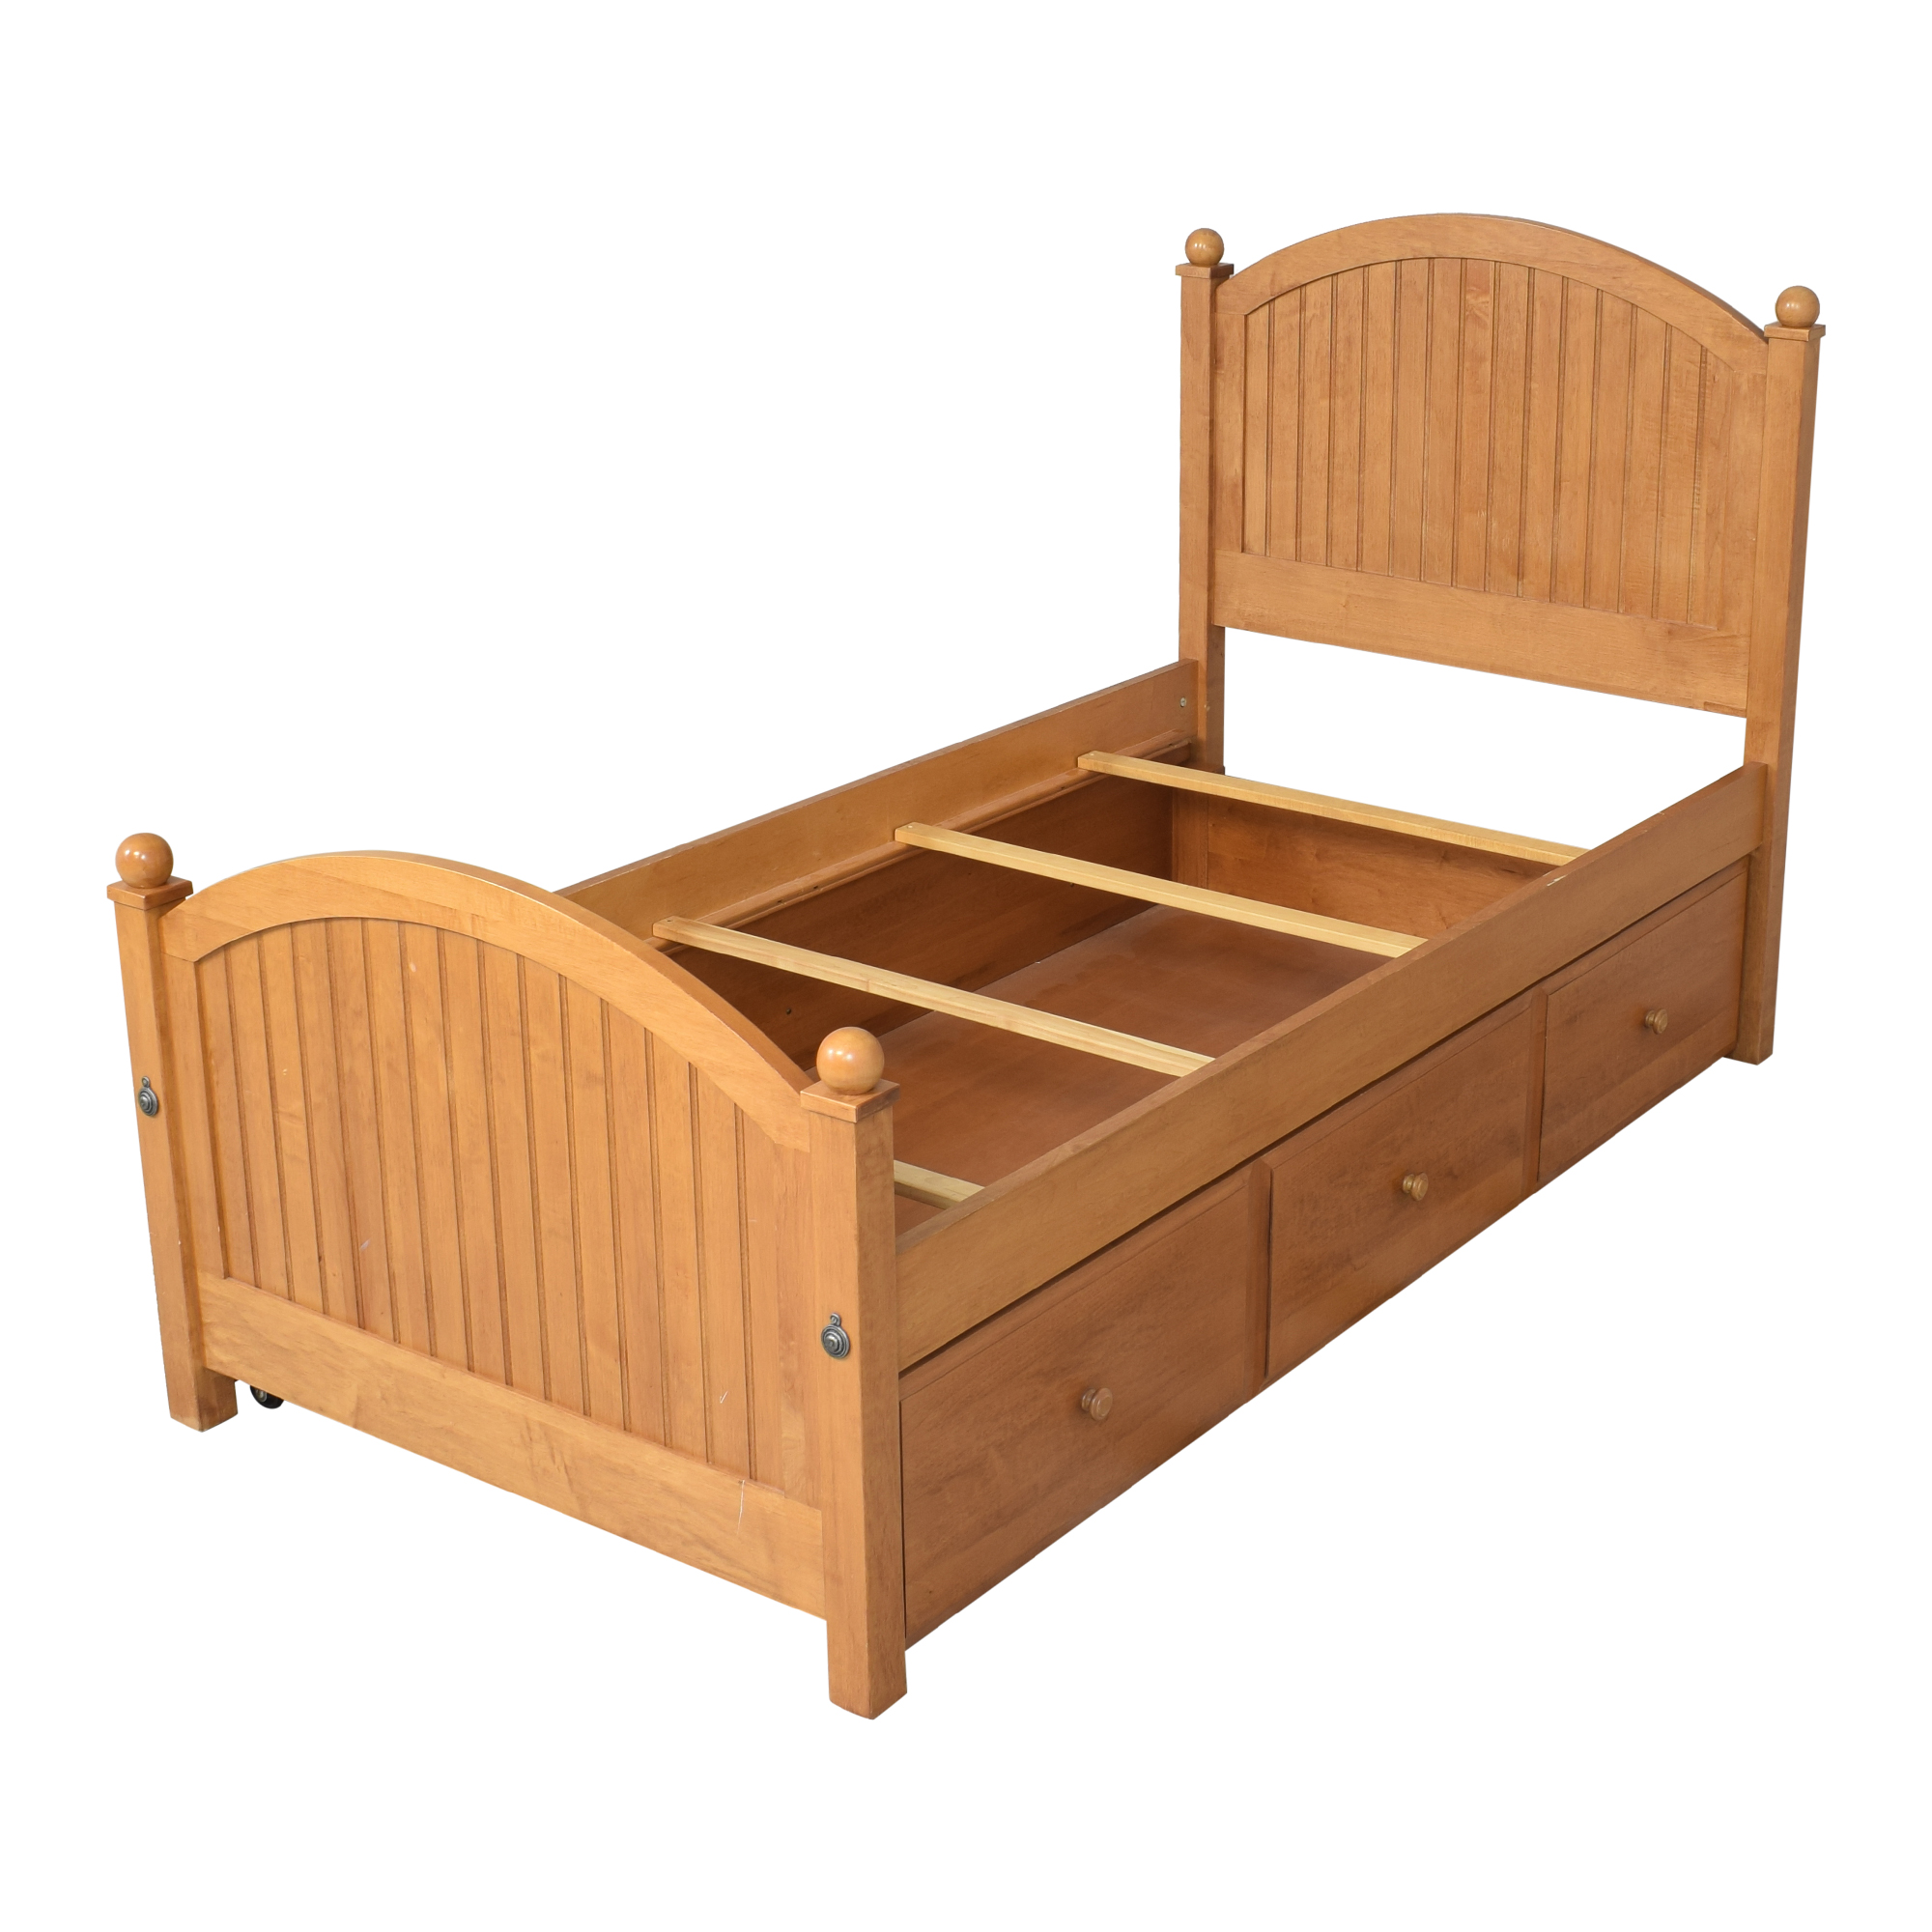 Ethan Allen Ethan Allen Country Colors Twin Bed with Trundle discount